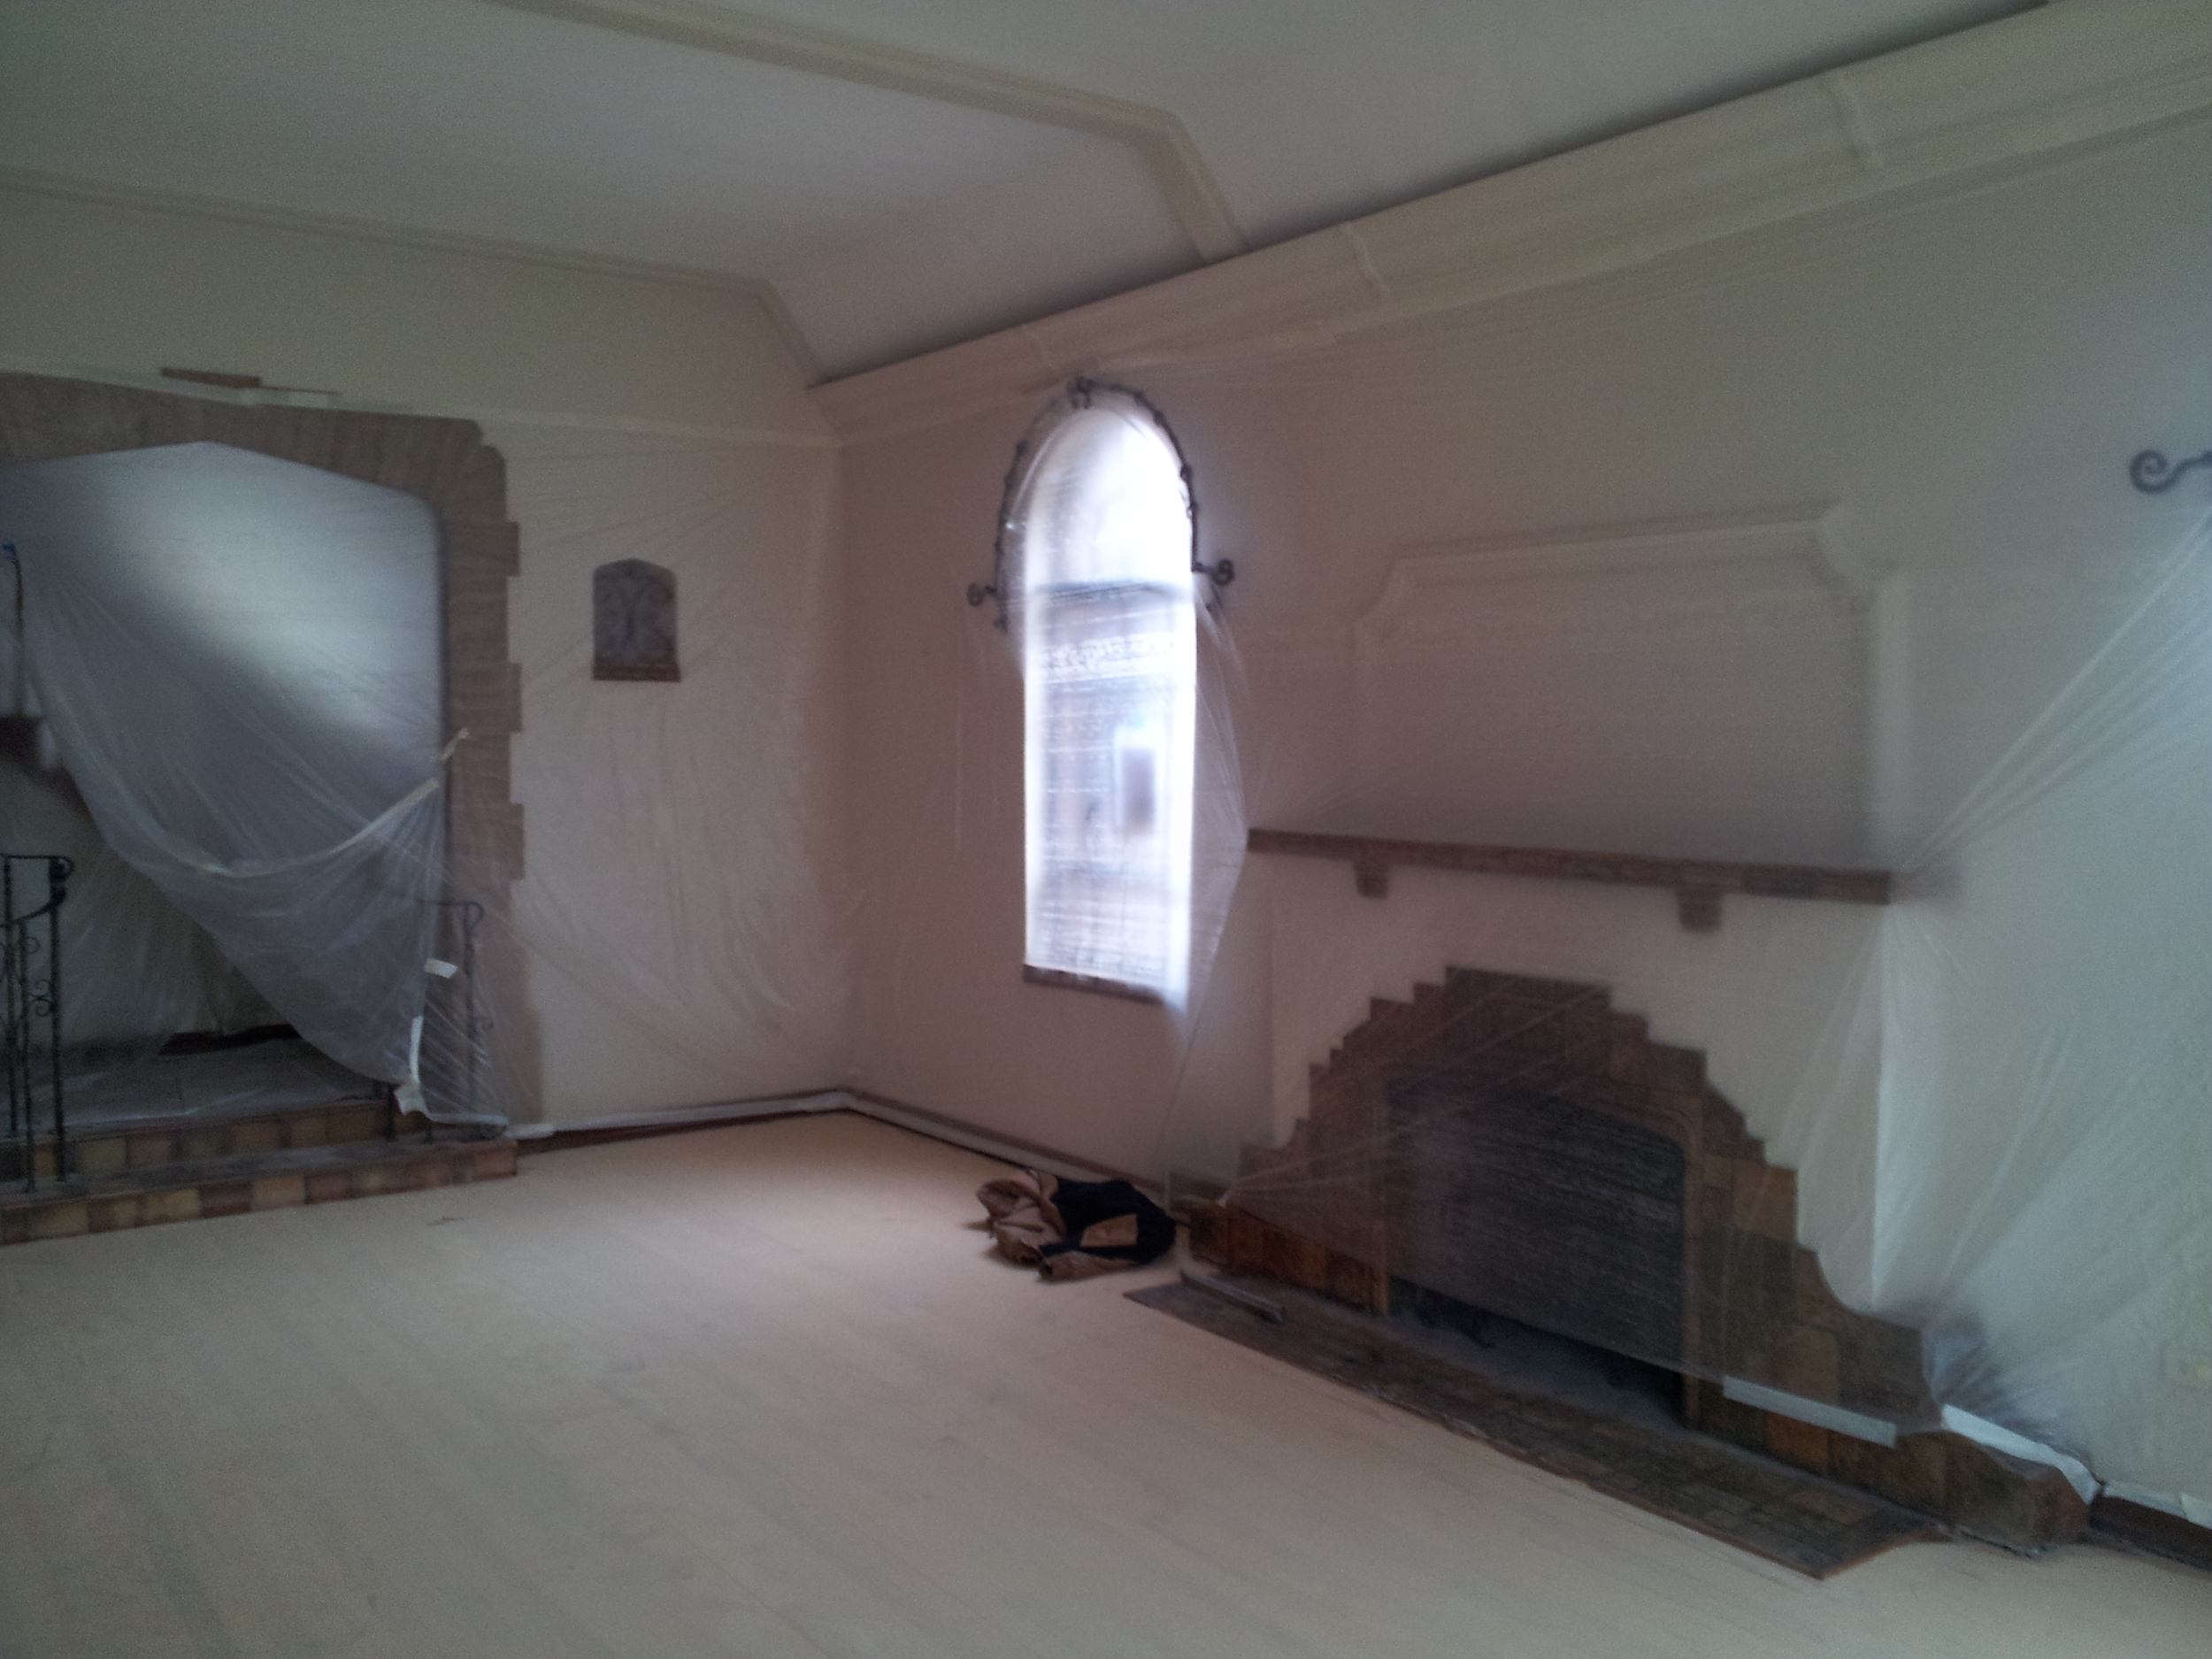 Architectural tudor archways. Refinishing hardwood floors, new plaster walls, new architectural archways, new tile, new ornamental guardrails, new crown molding.